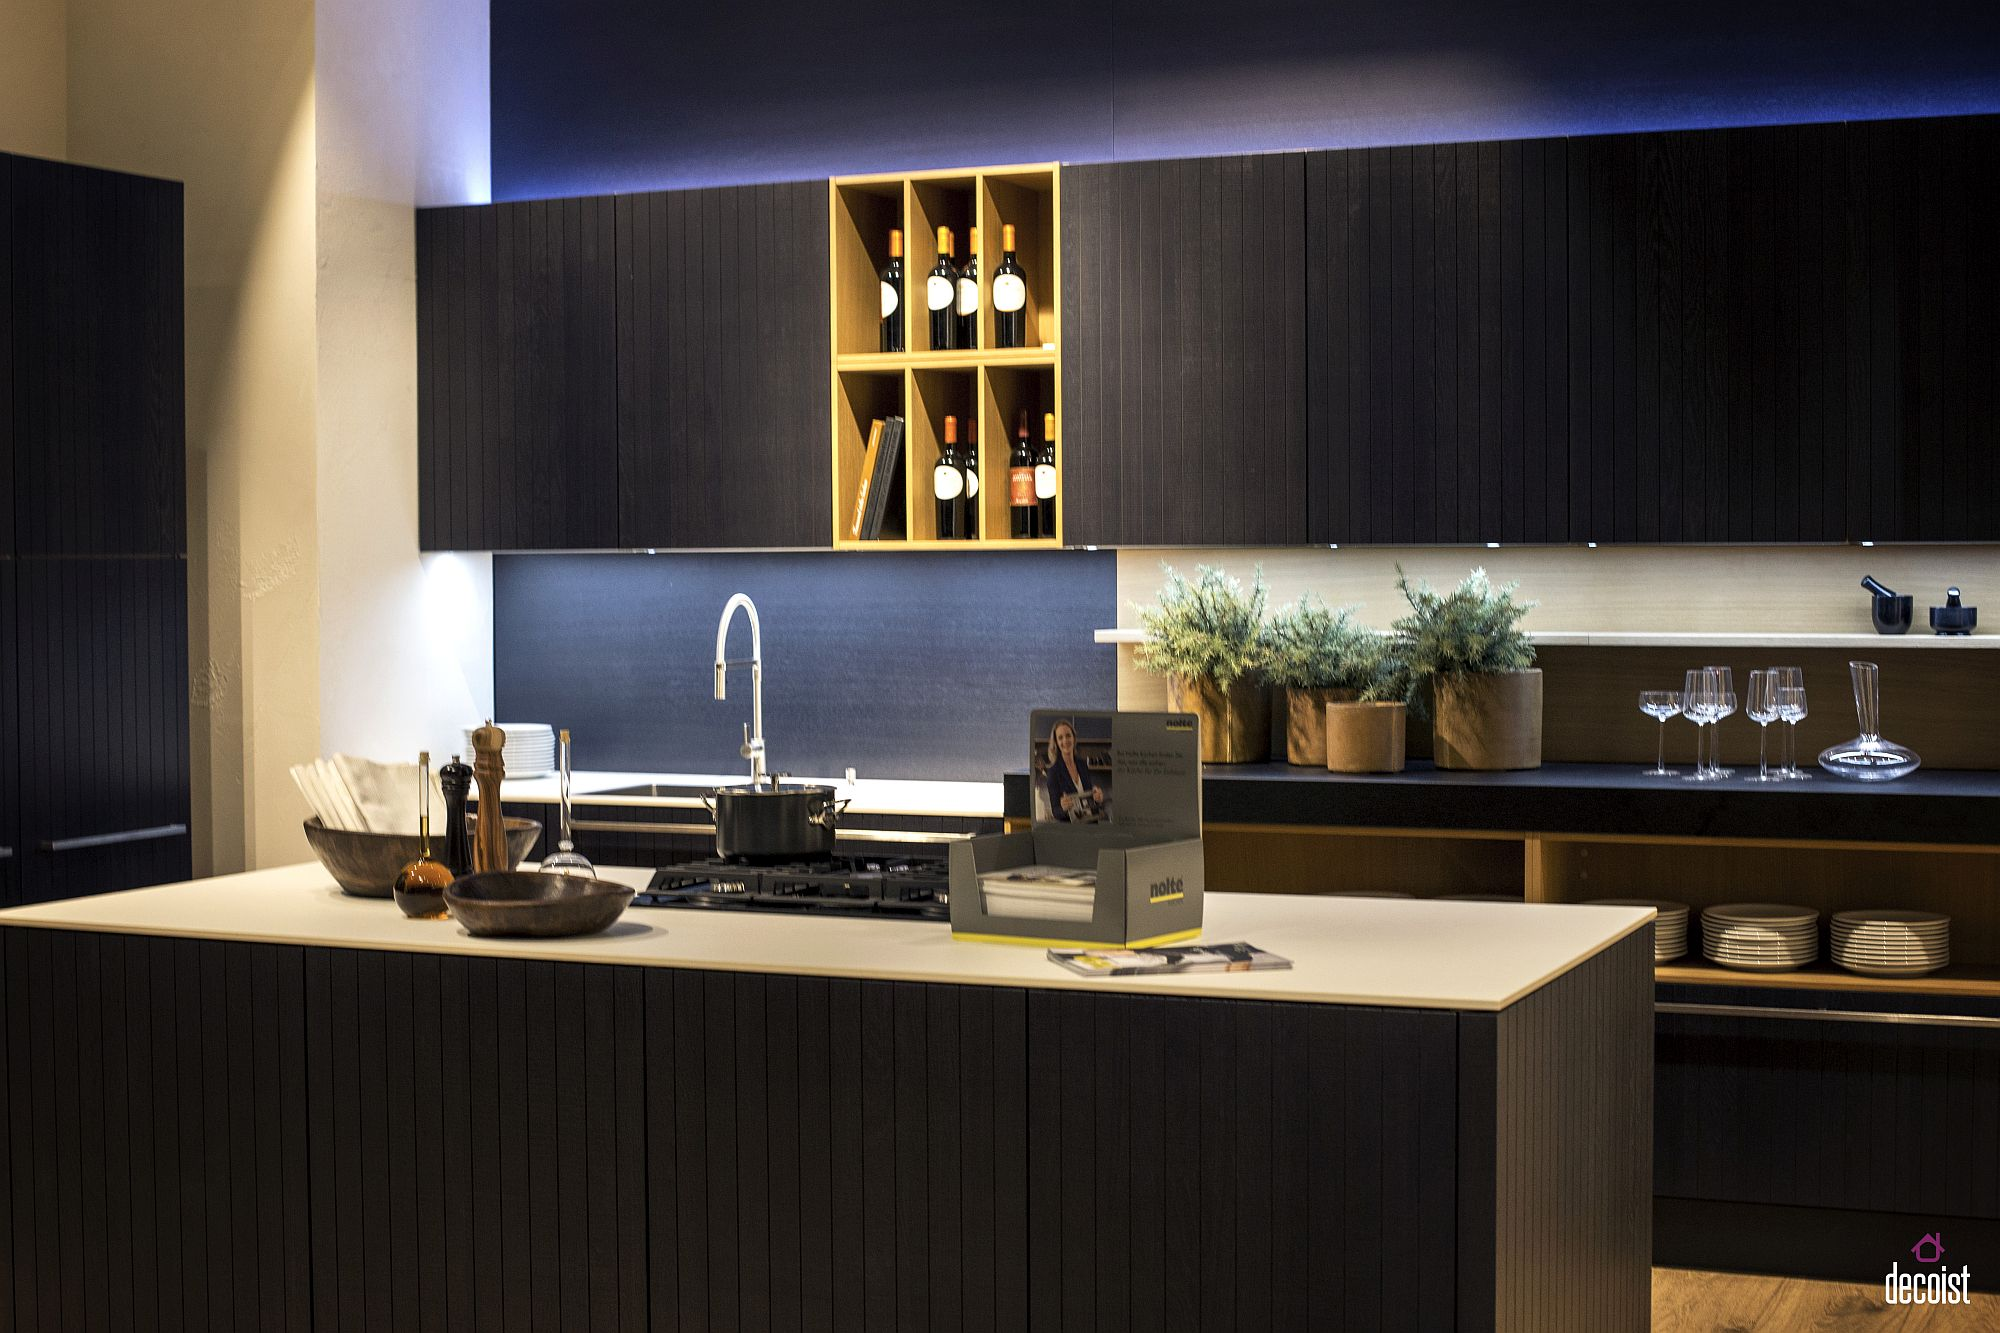 Elegant wooden finish for the cabinets and the island gives the kitchen a curated appeal